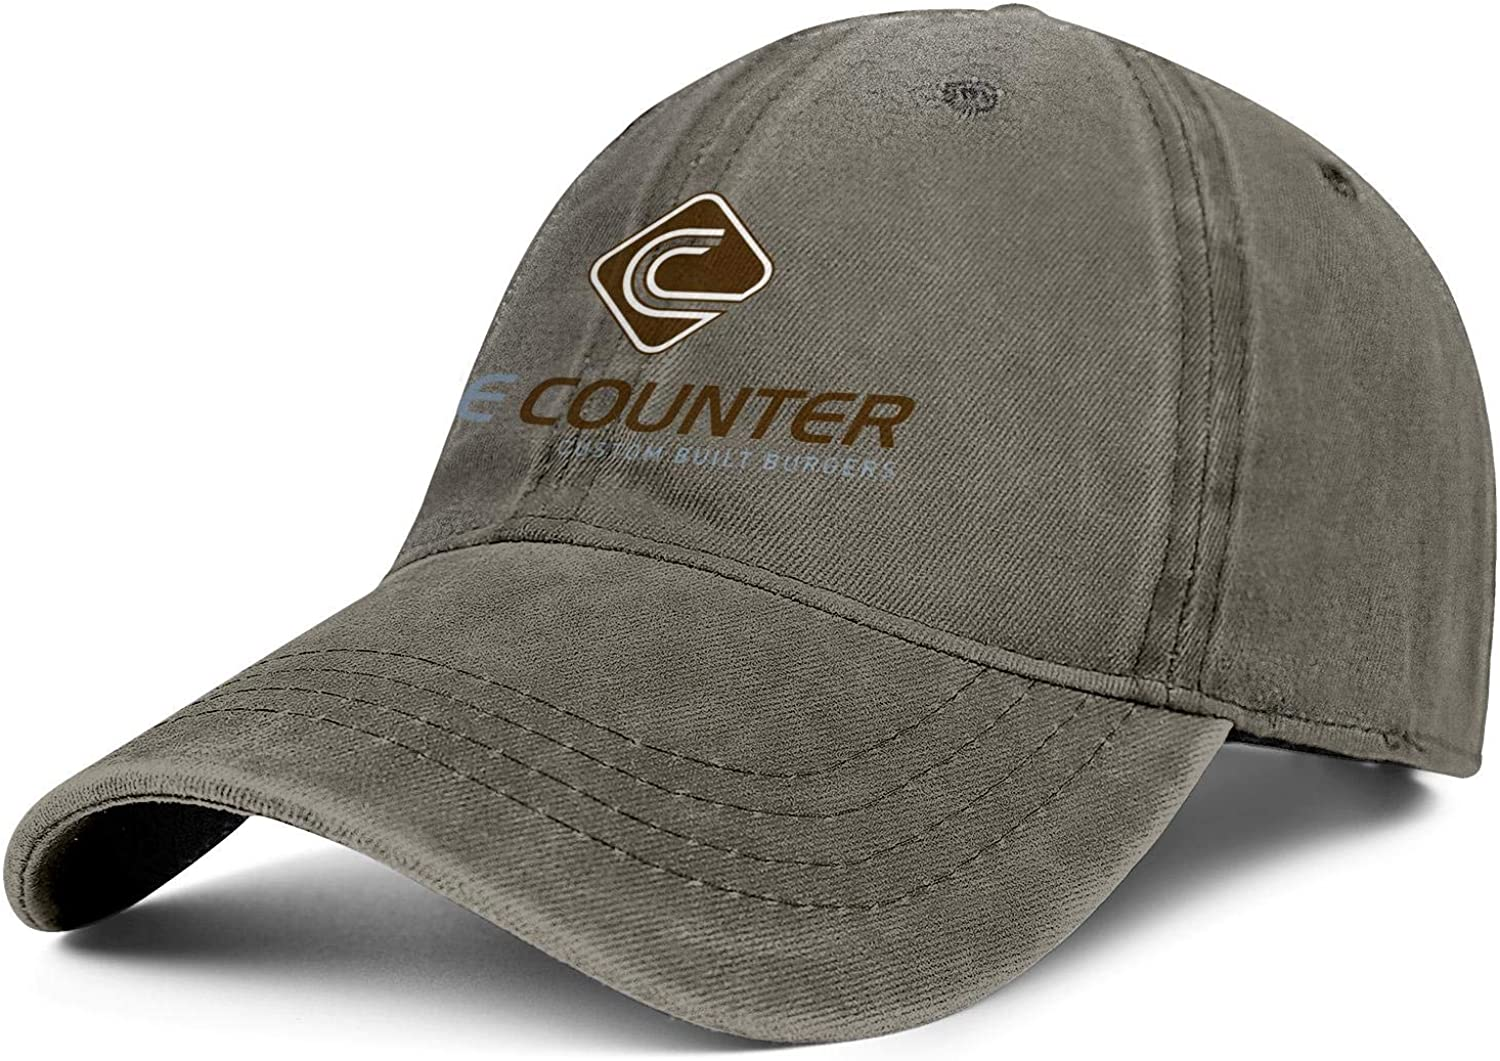 WintyHC The Counter Burger Cowboy Hat Dad Hat One Size Baseball Cap